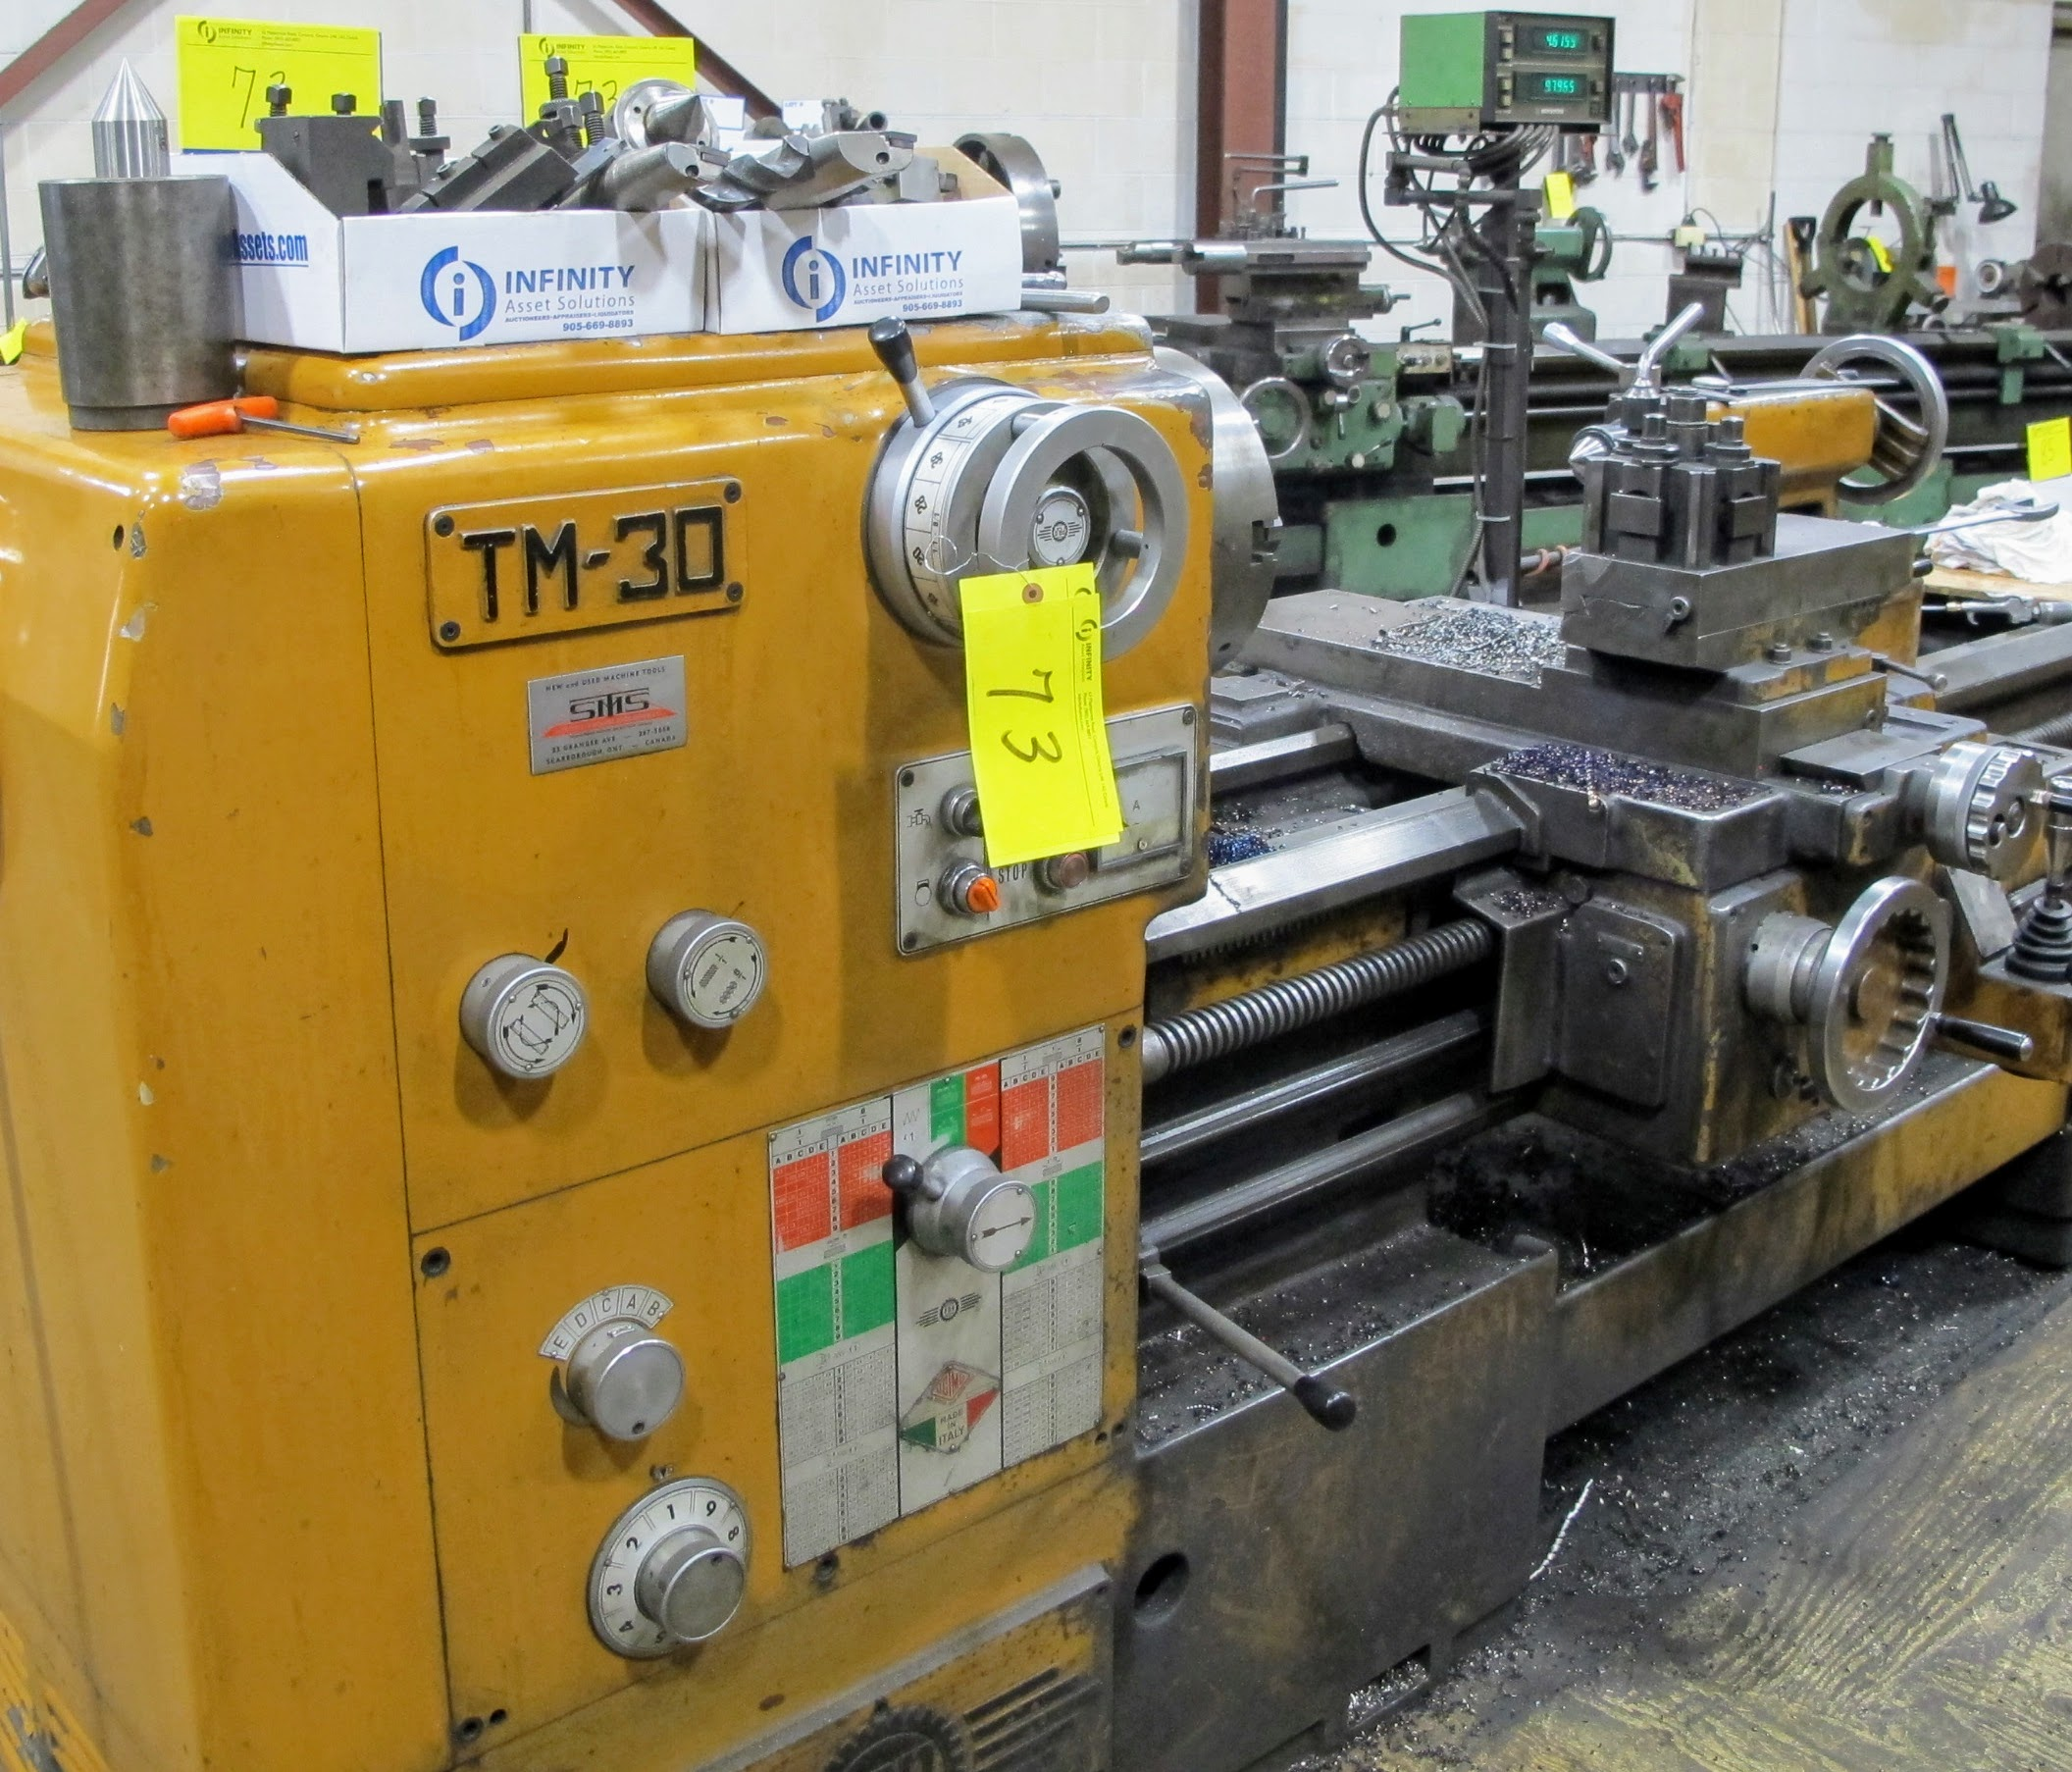 """PBR TM-30 LATHE, 2-AXIS DRO, 12"""" 3-JAW CHUCK, 12' BED, 15 - 1,500 RPM, QUICK CHANGE TOOL HOLDER,"""